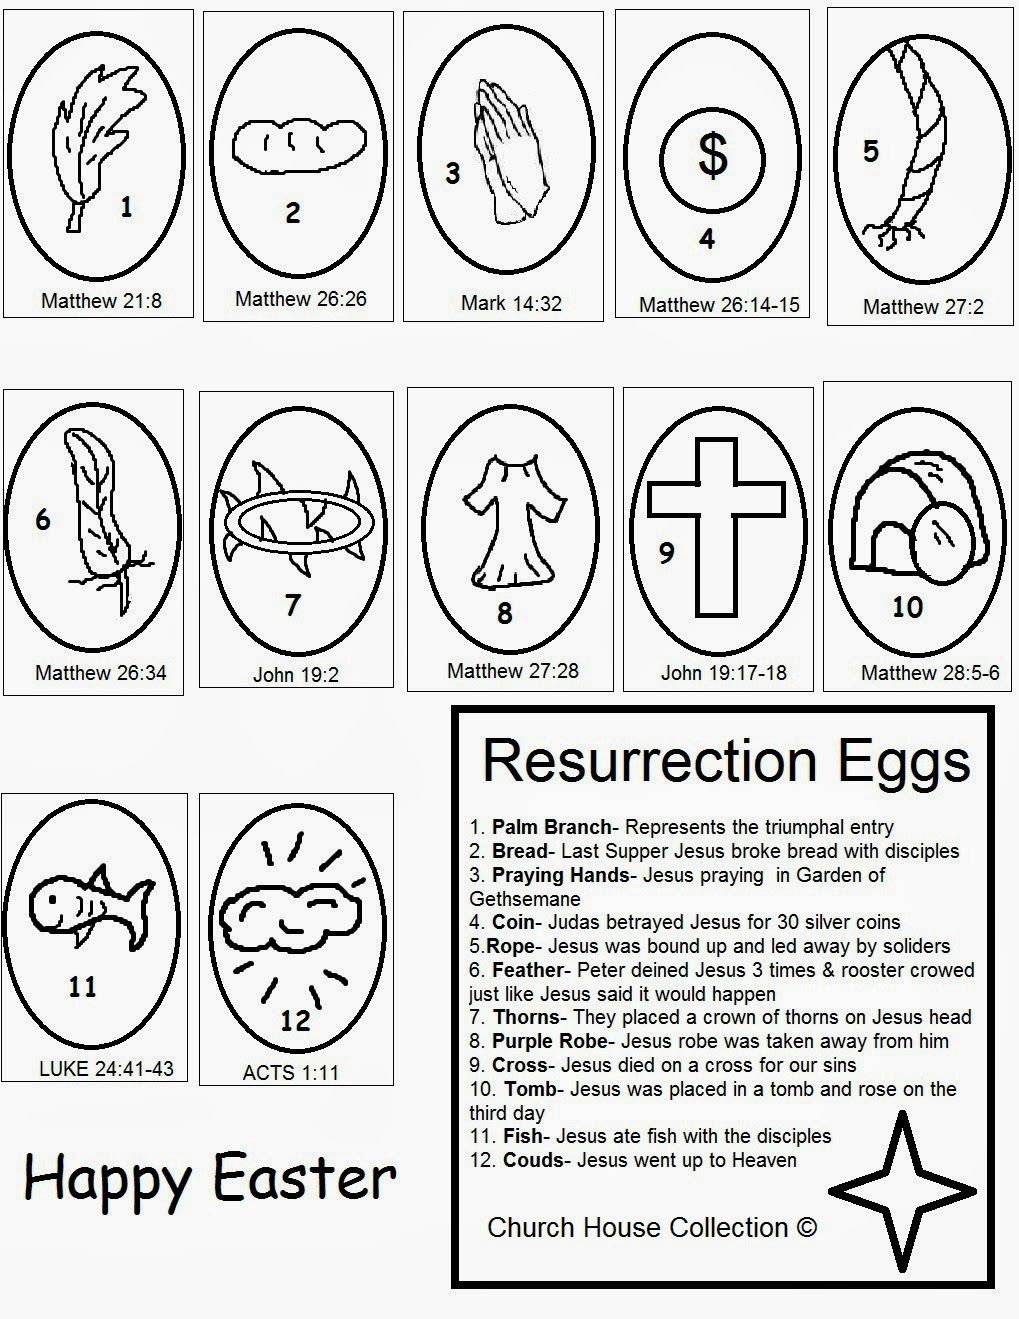 Church House Collection Blog: Easter Resurrection Eggs Craft- Free ...